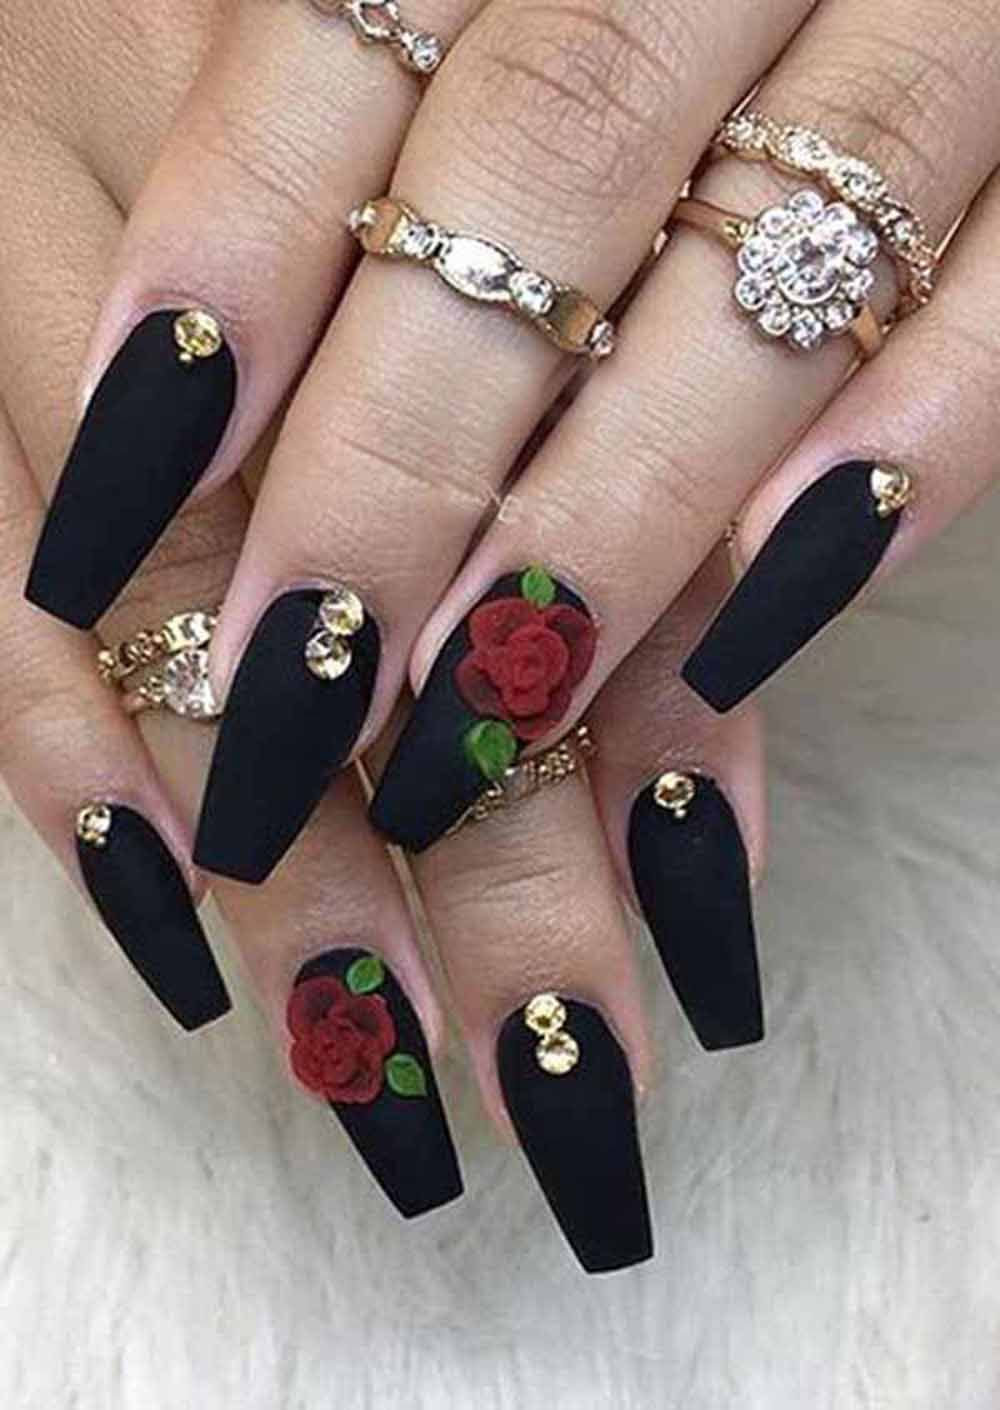 13 Sensational Red And Black Acrylic Nail Designs You Must Apply In 2020 Black Acrylic Nails Black Acrylic Nail Designs Matte Black Nails